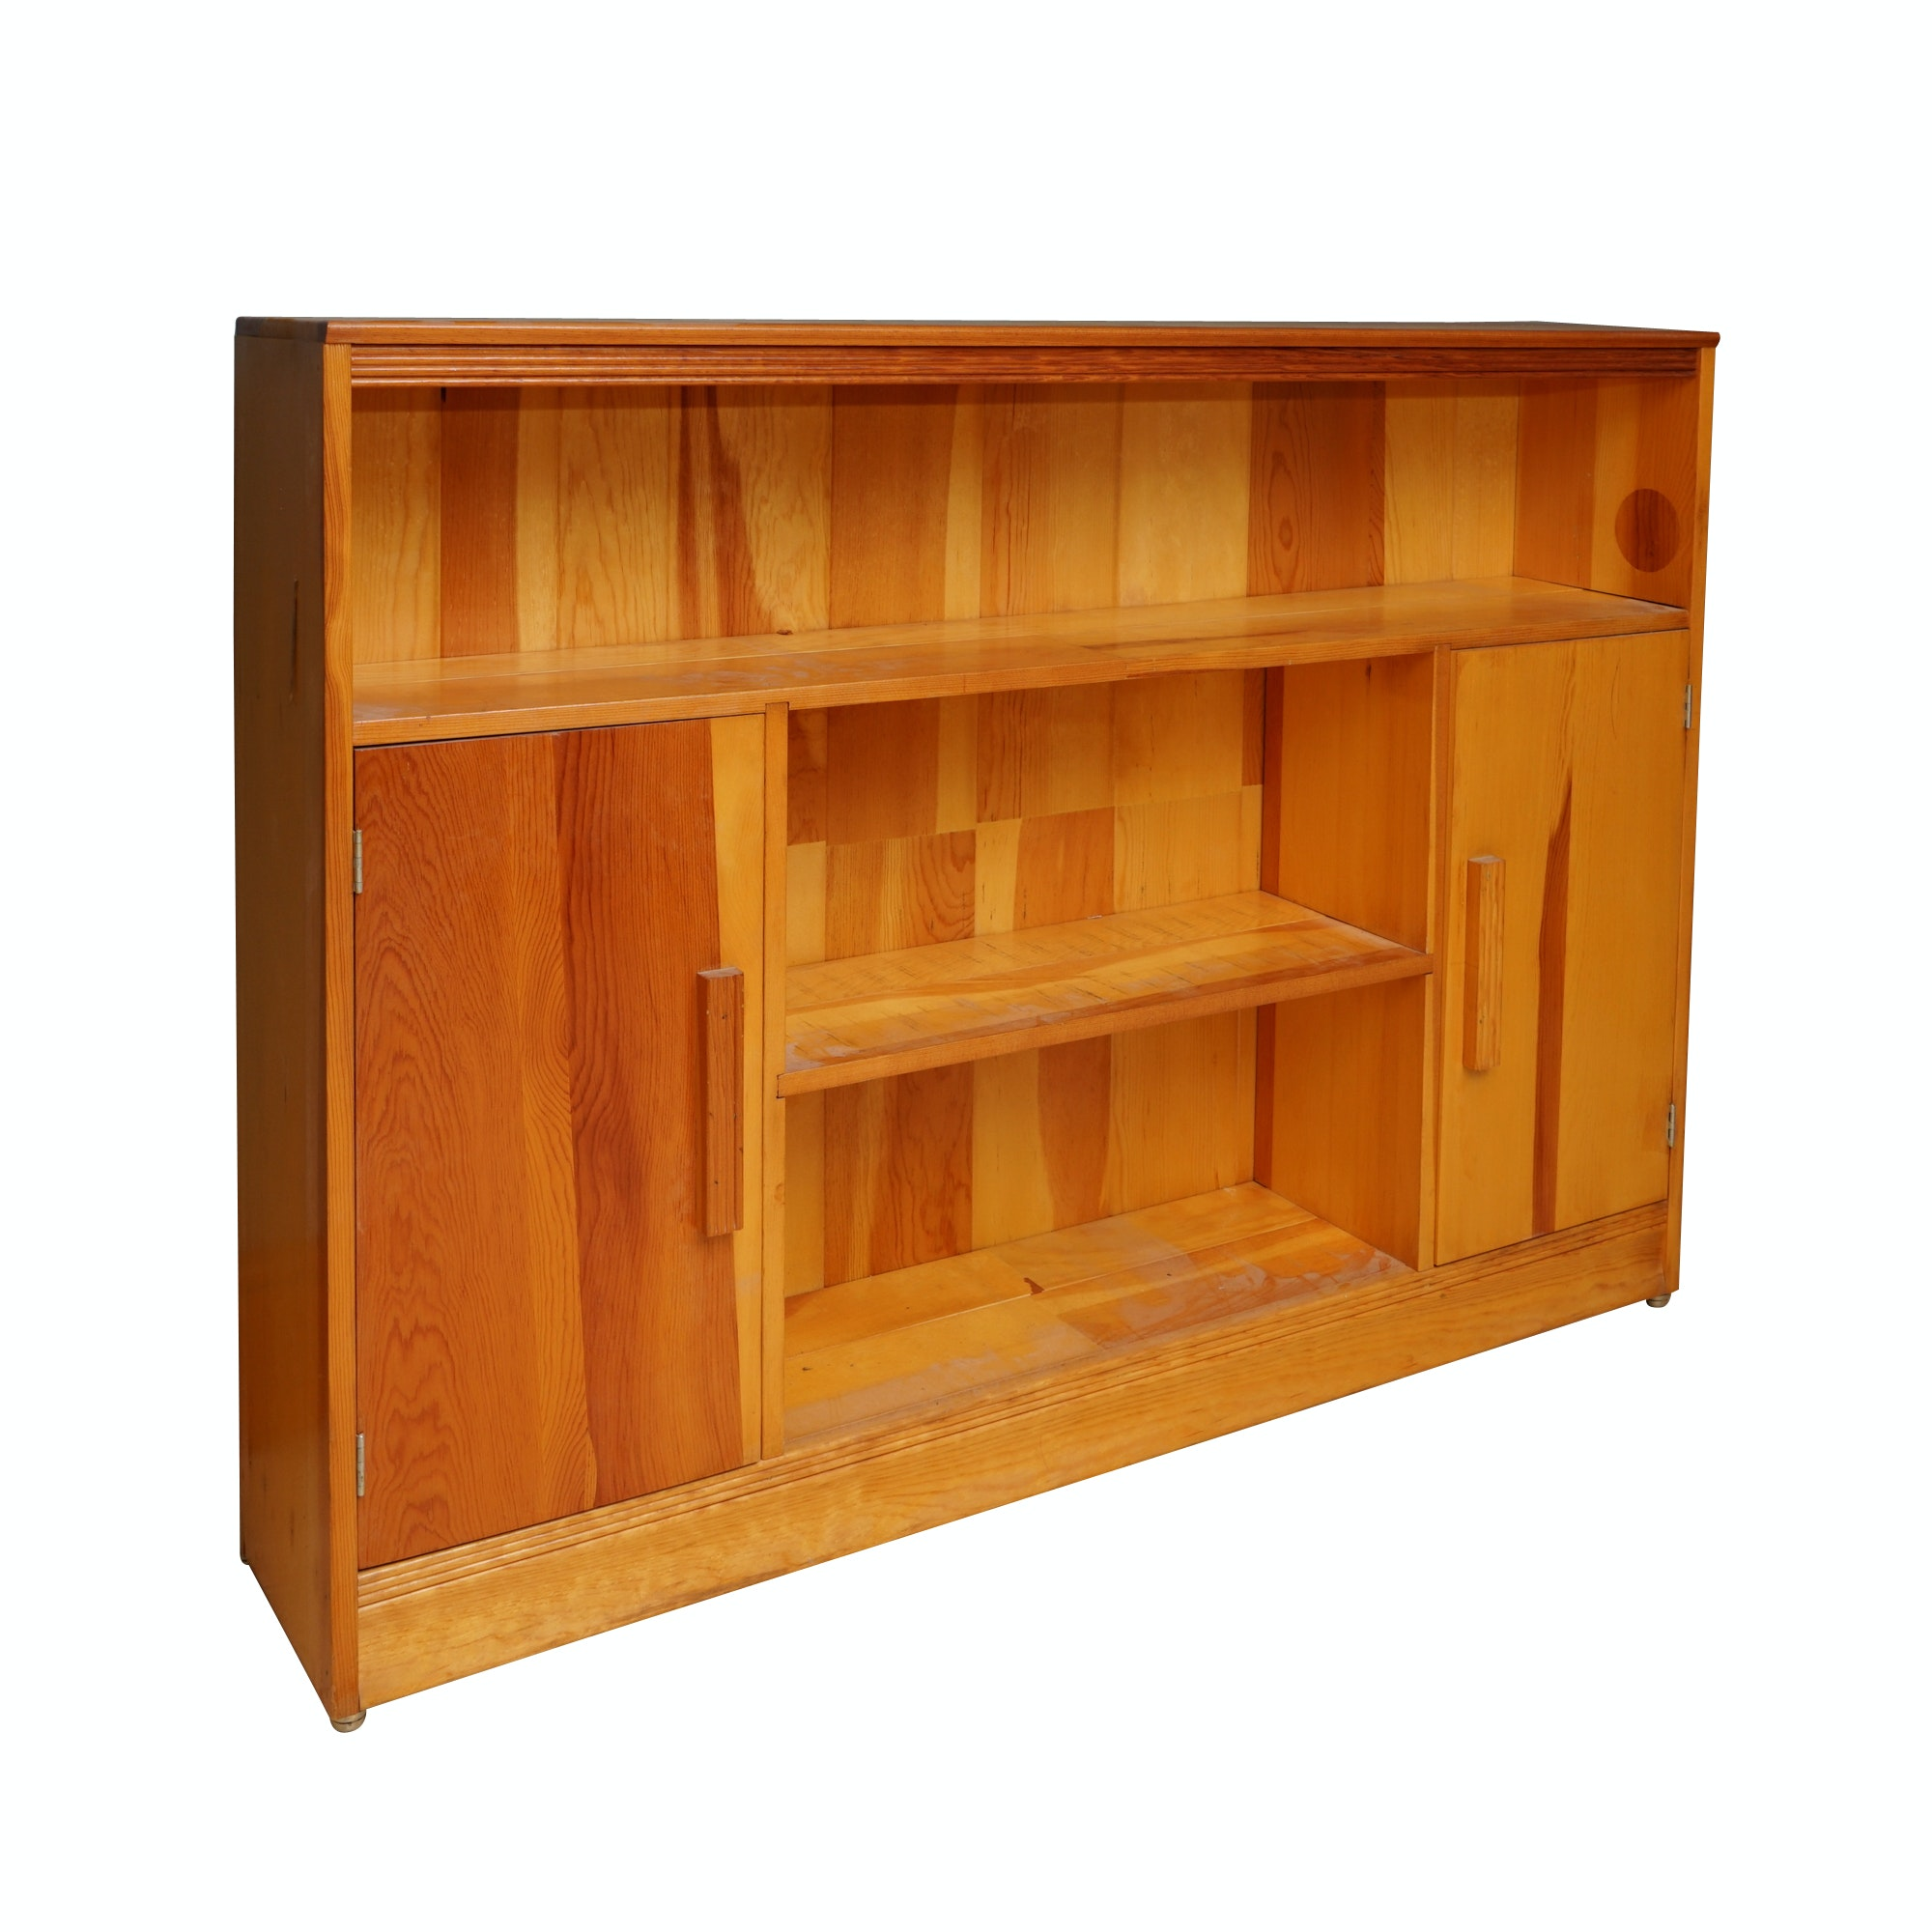 Contemporary Mixed Wood Bookcase Cabinet